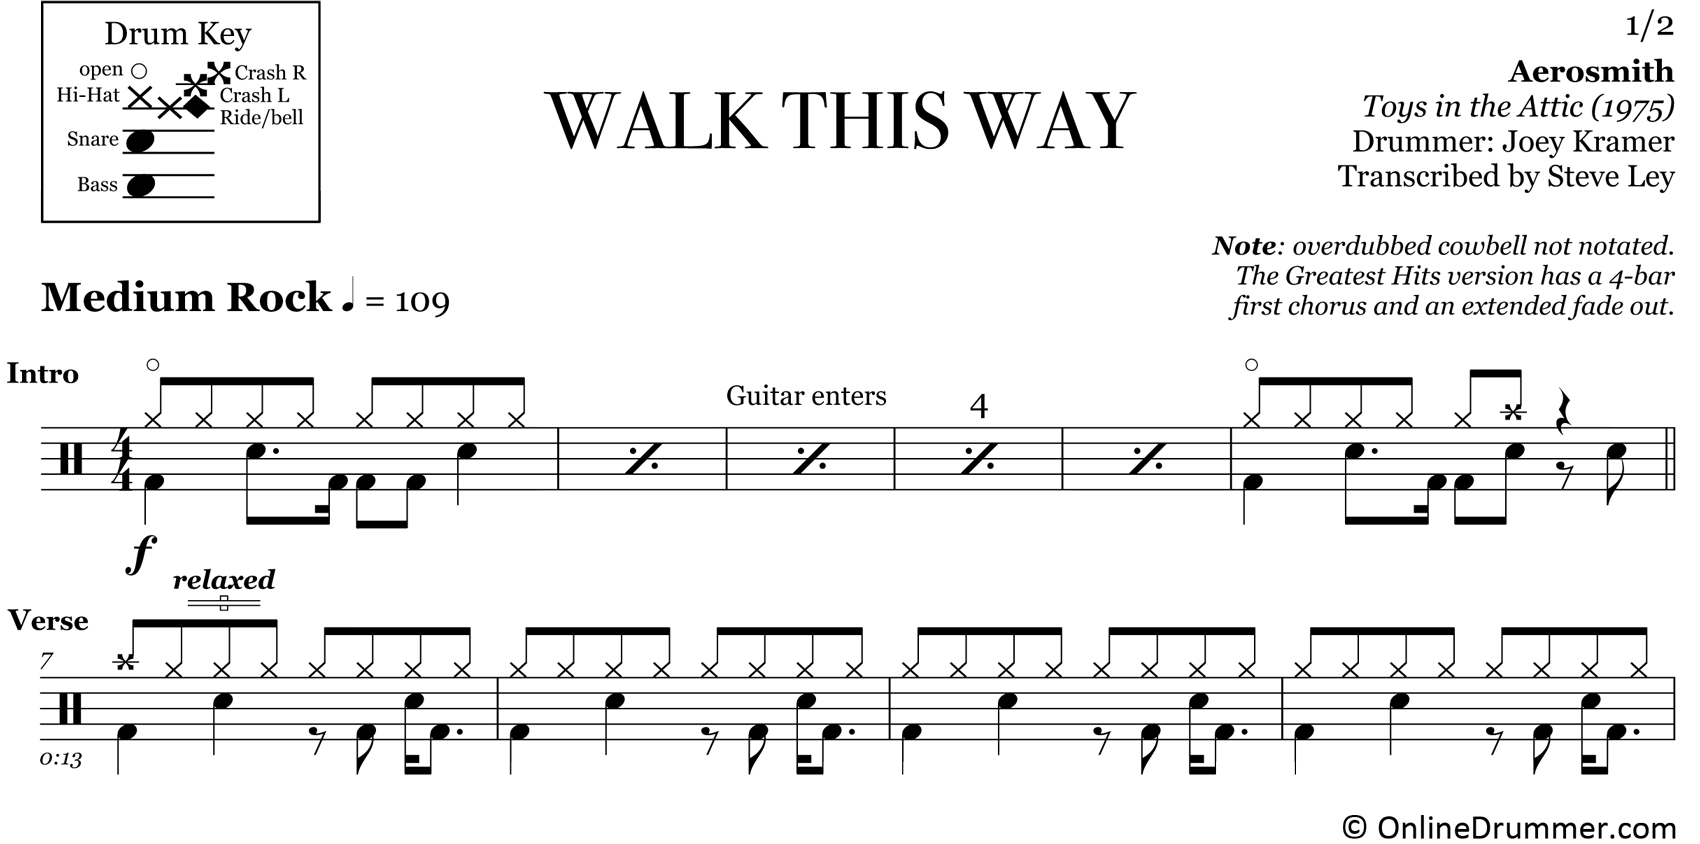 Walk This Way - Aerosmith - Drum Sheet Music